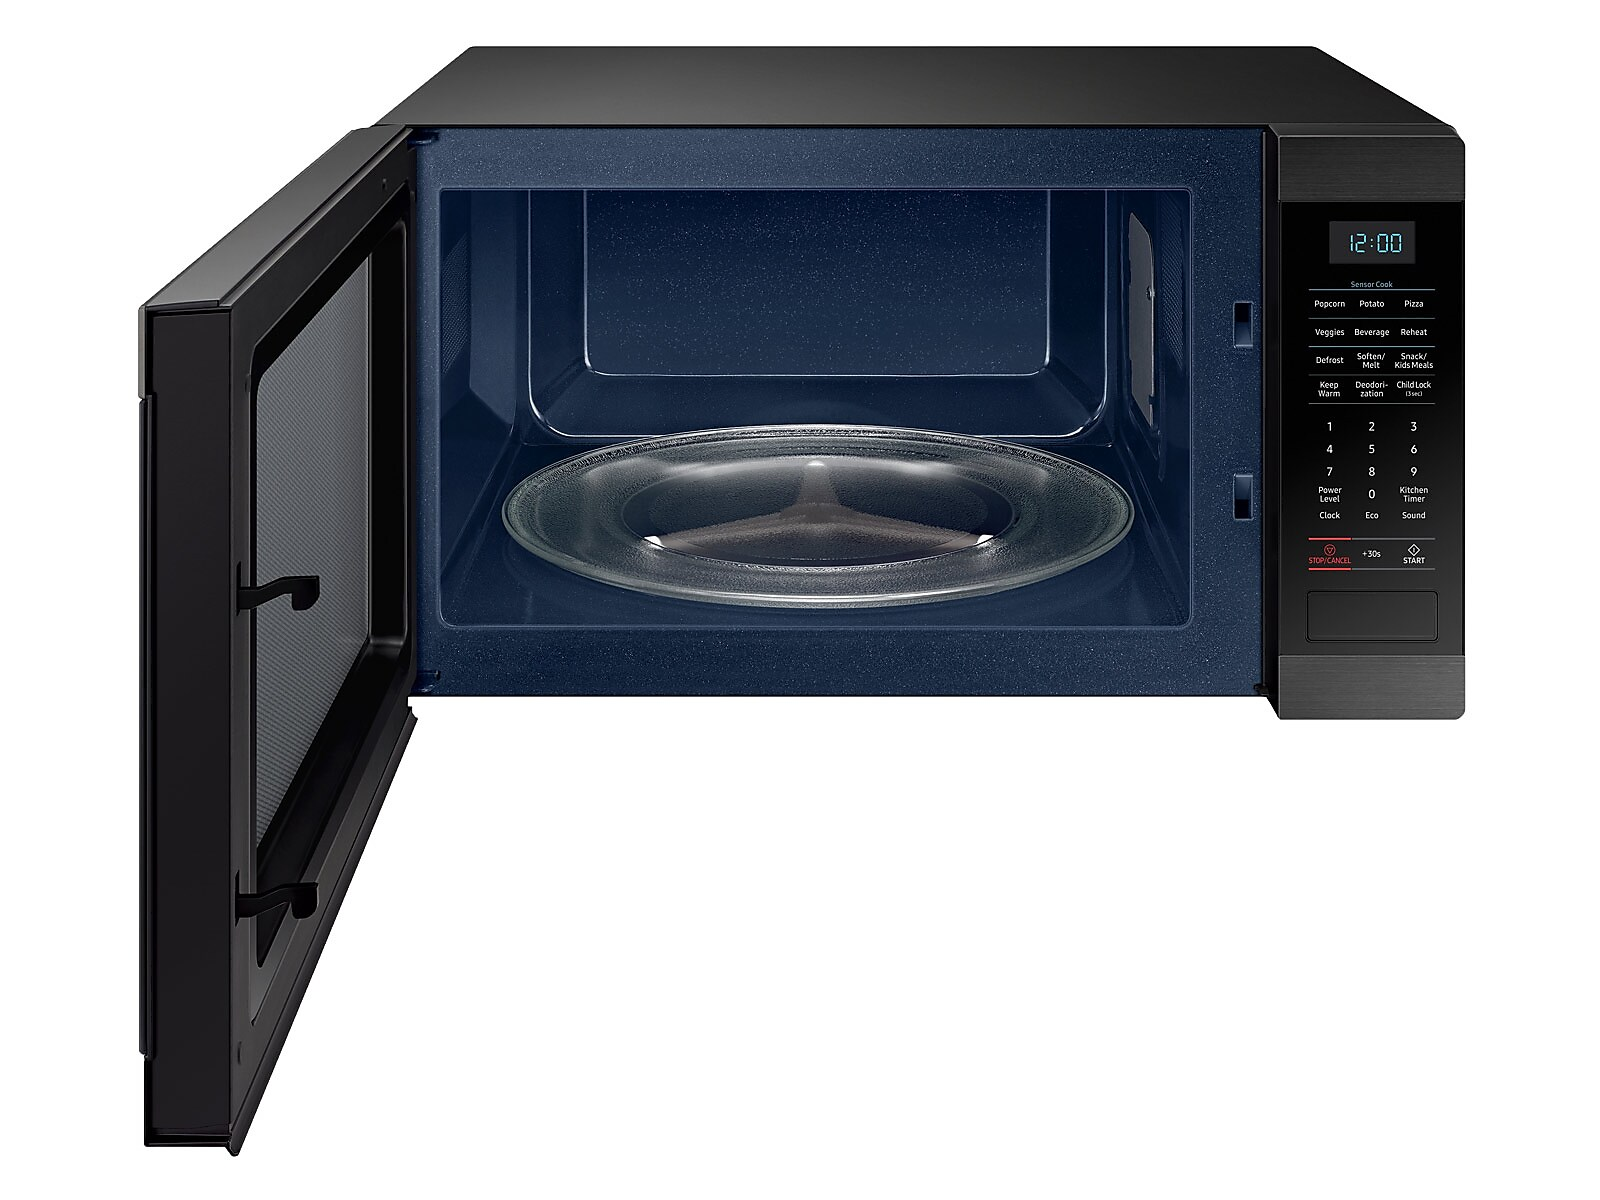 Samsung 1 9 Cu Ft Countertop Microwave With Sensor Cooking In